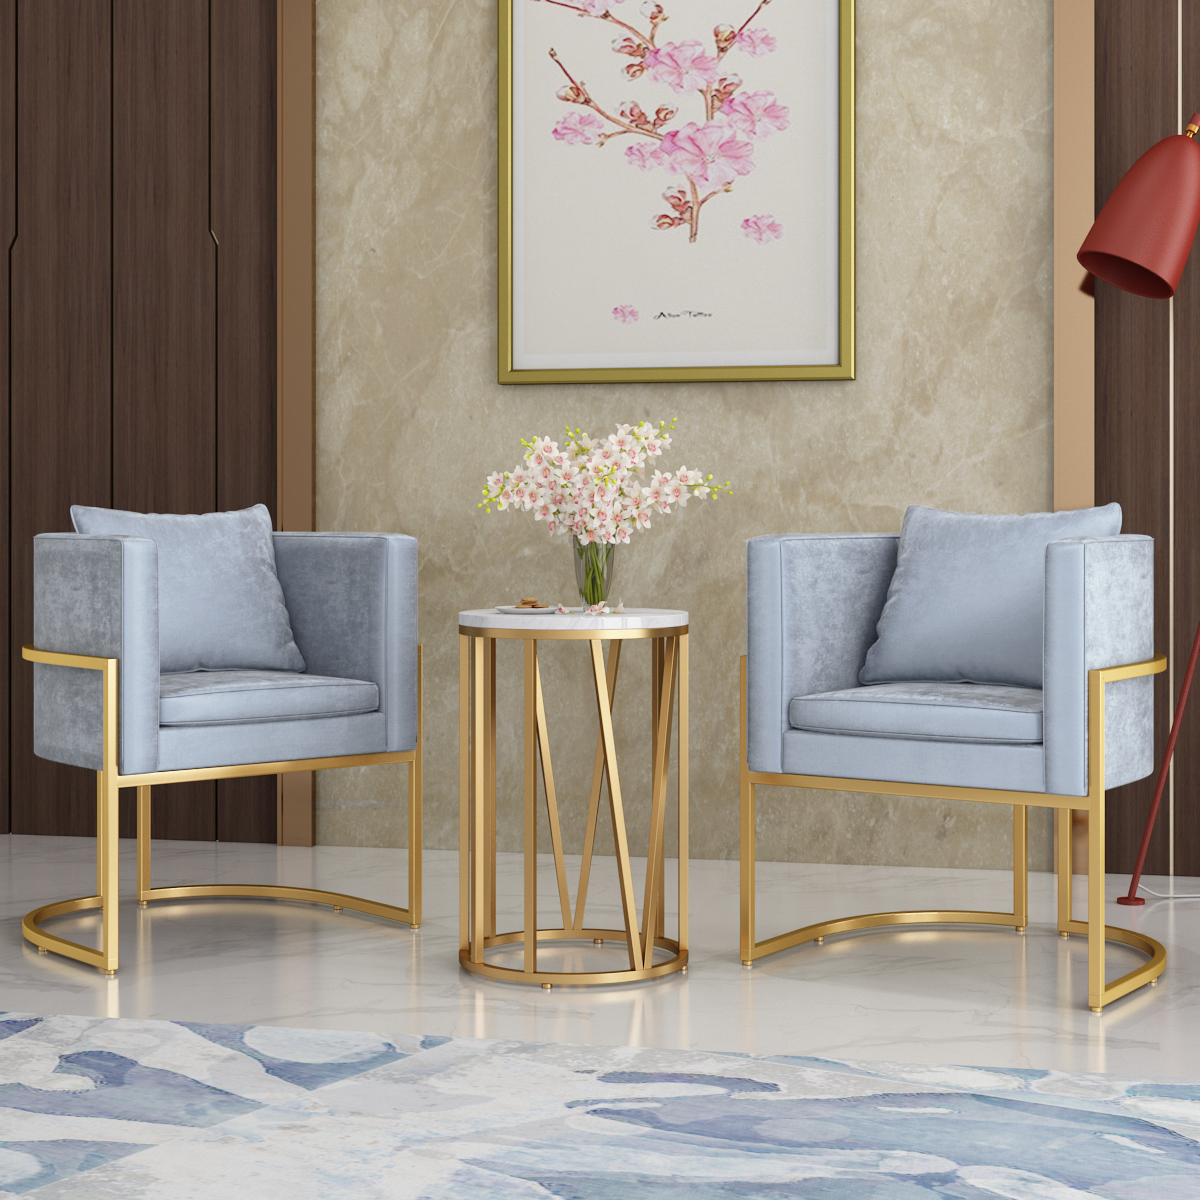 Nordic Wrought Iron Single Sofa Chair Golden Chair Cafe